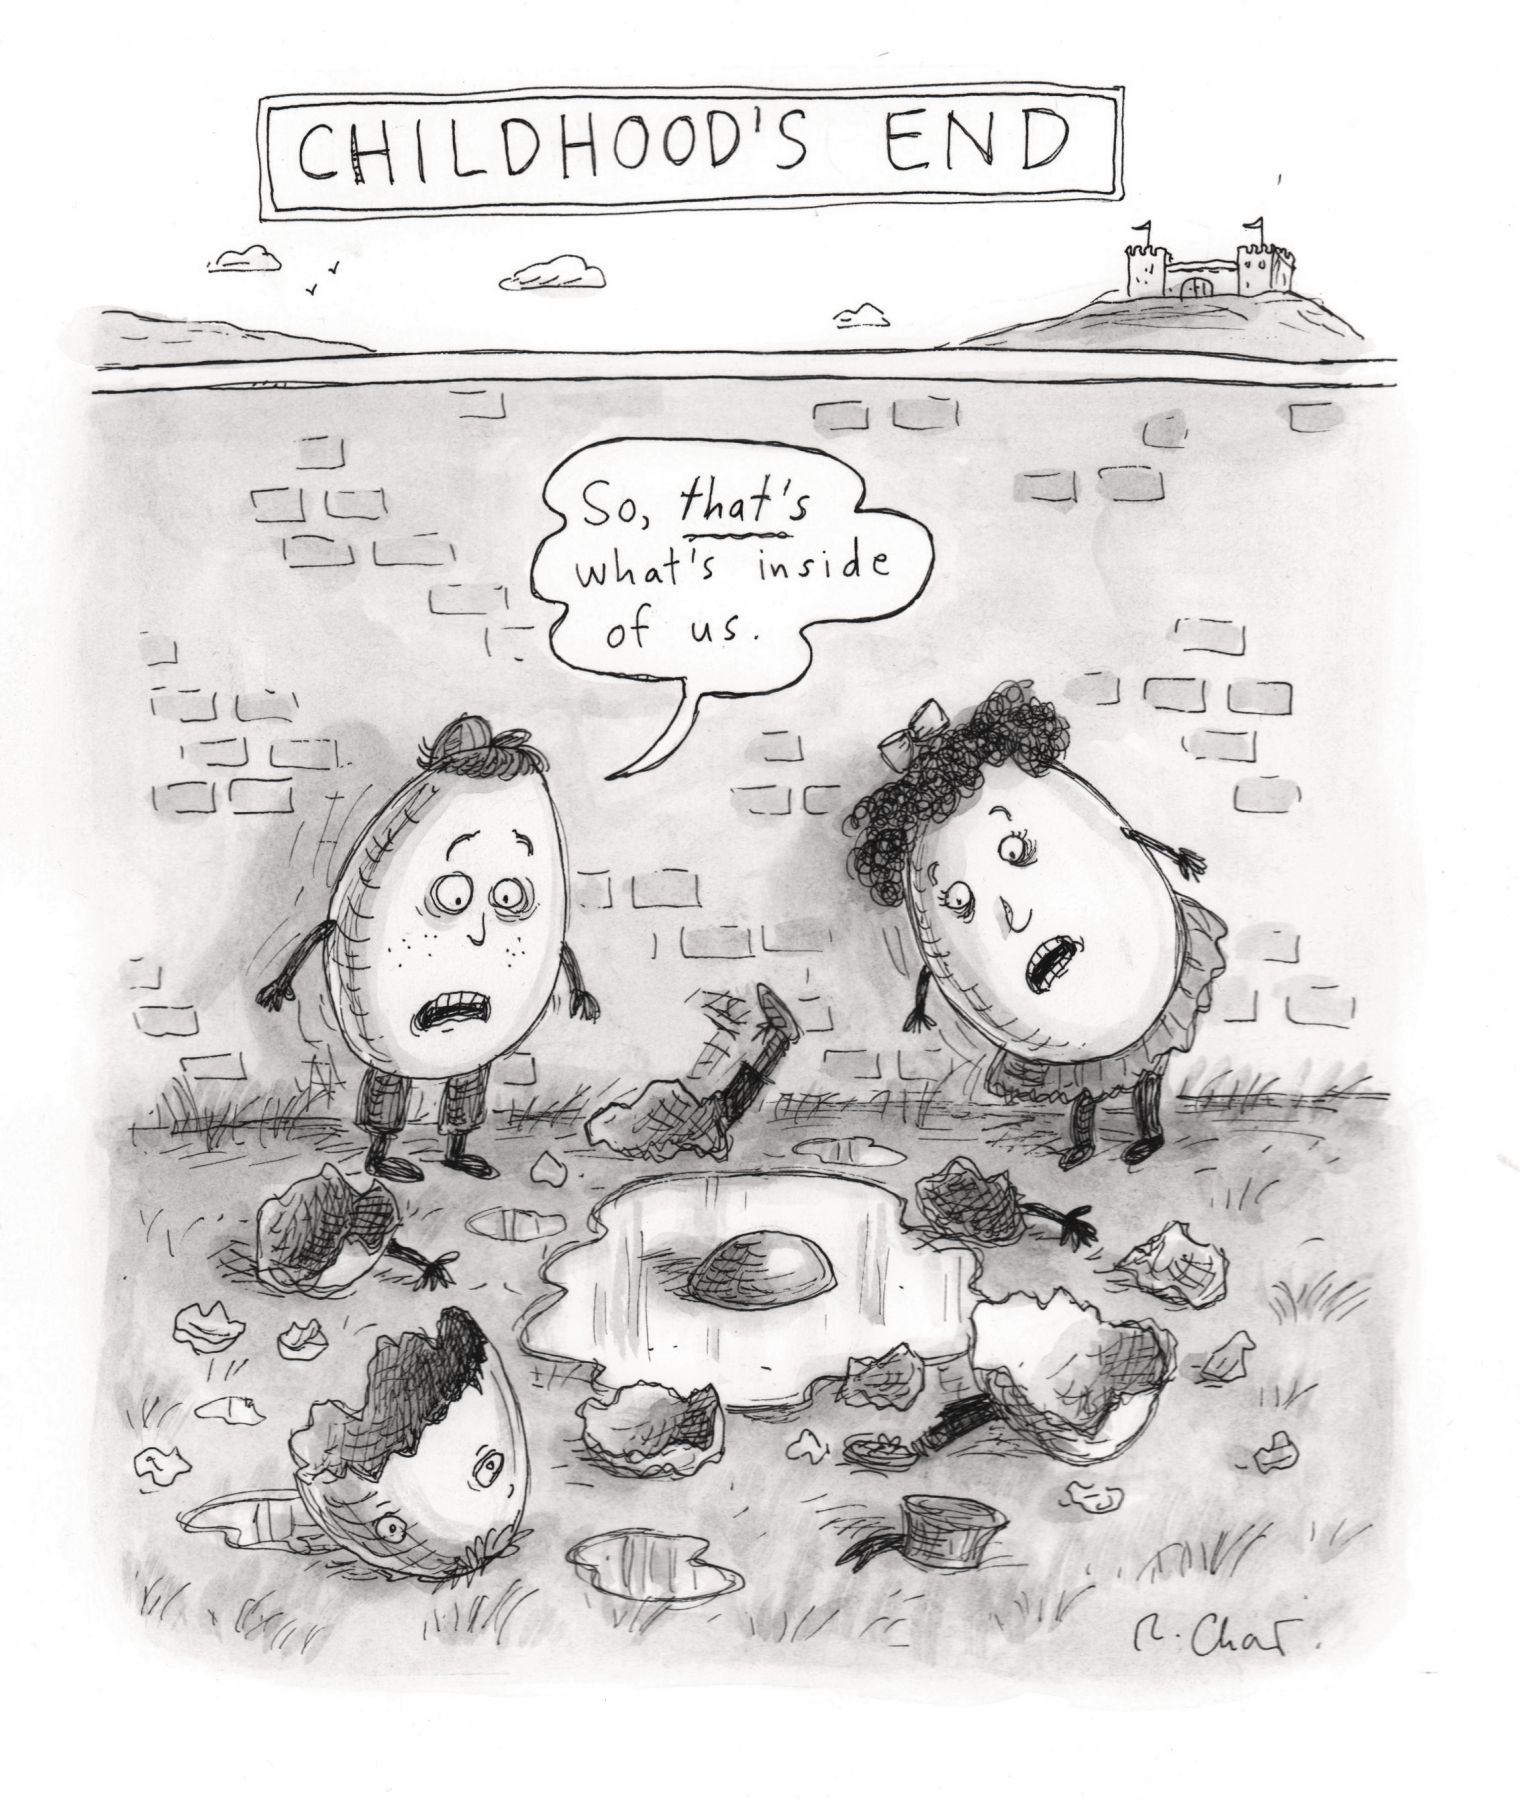 Roz Chast, Childhood's End, published May 5, 2014